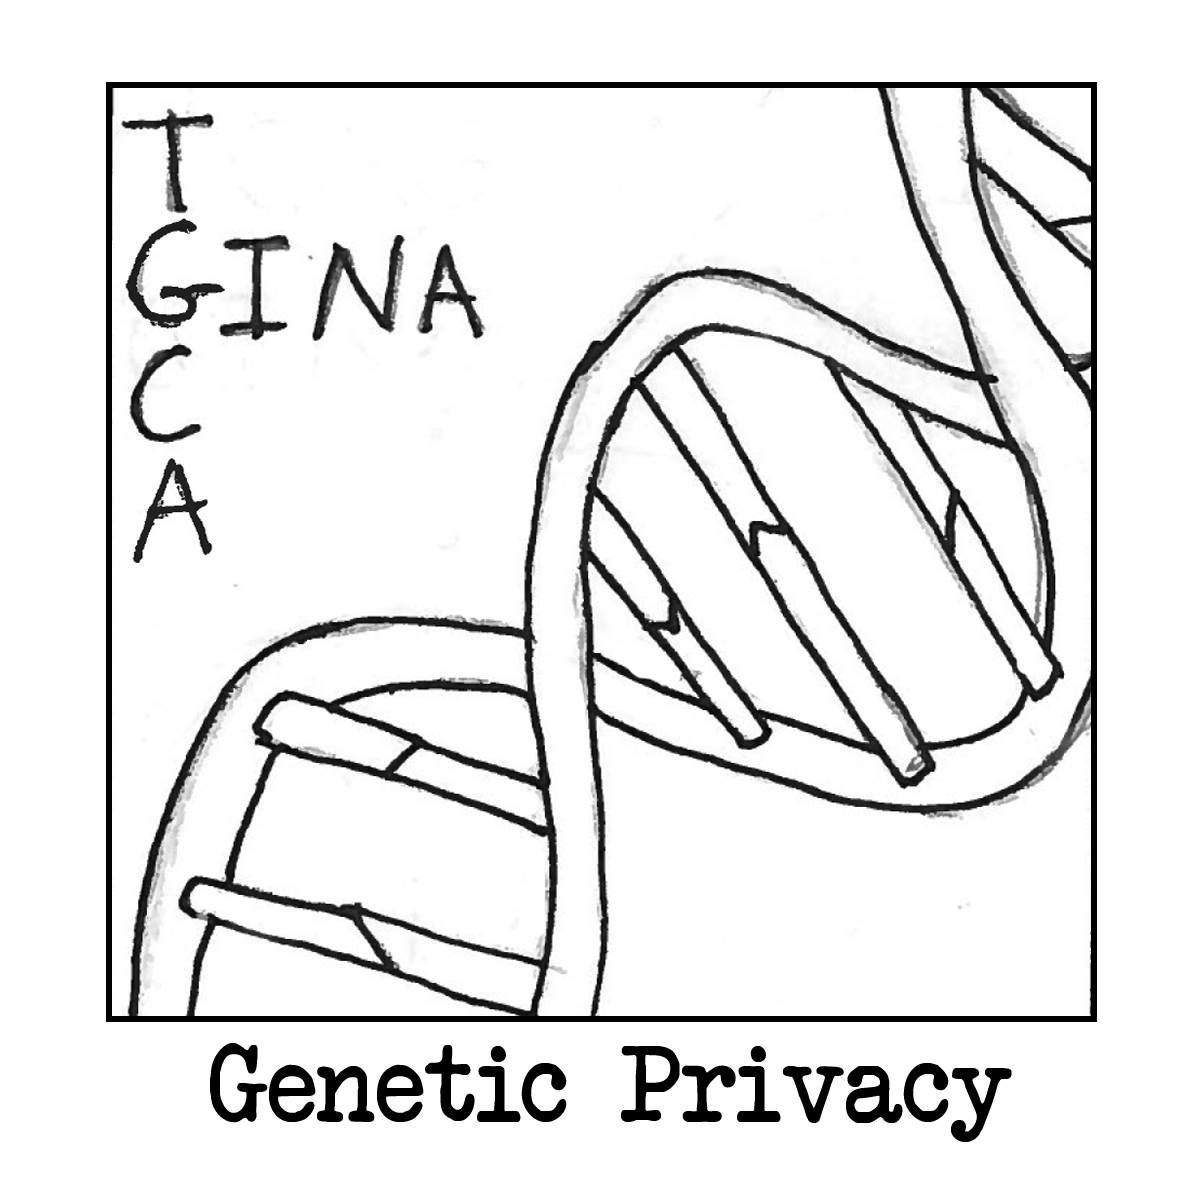 Geneticprivacy